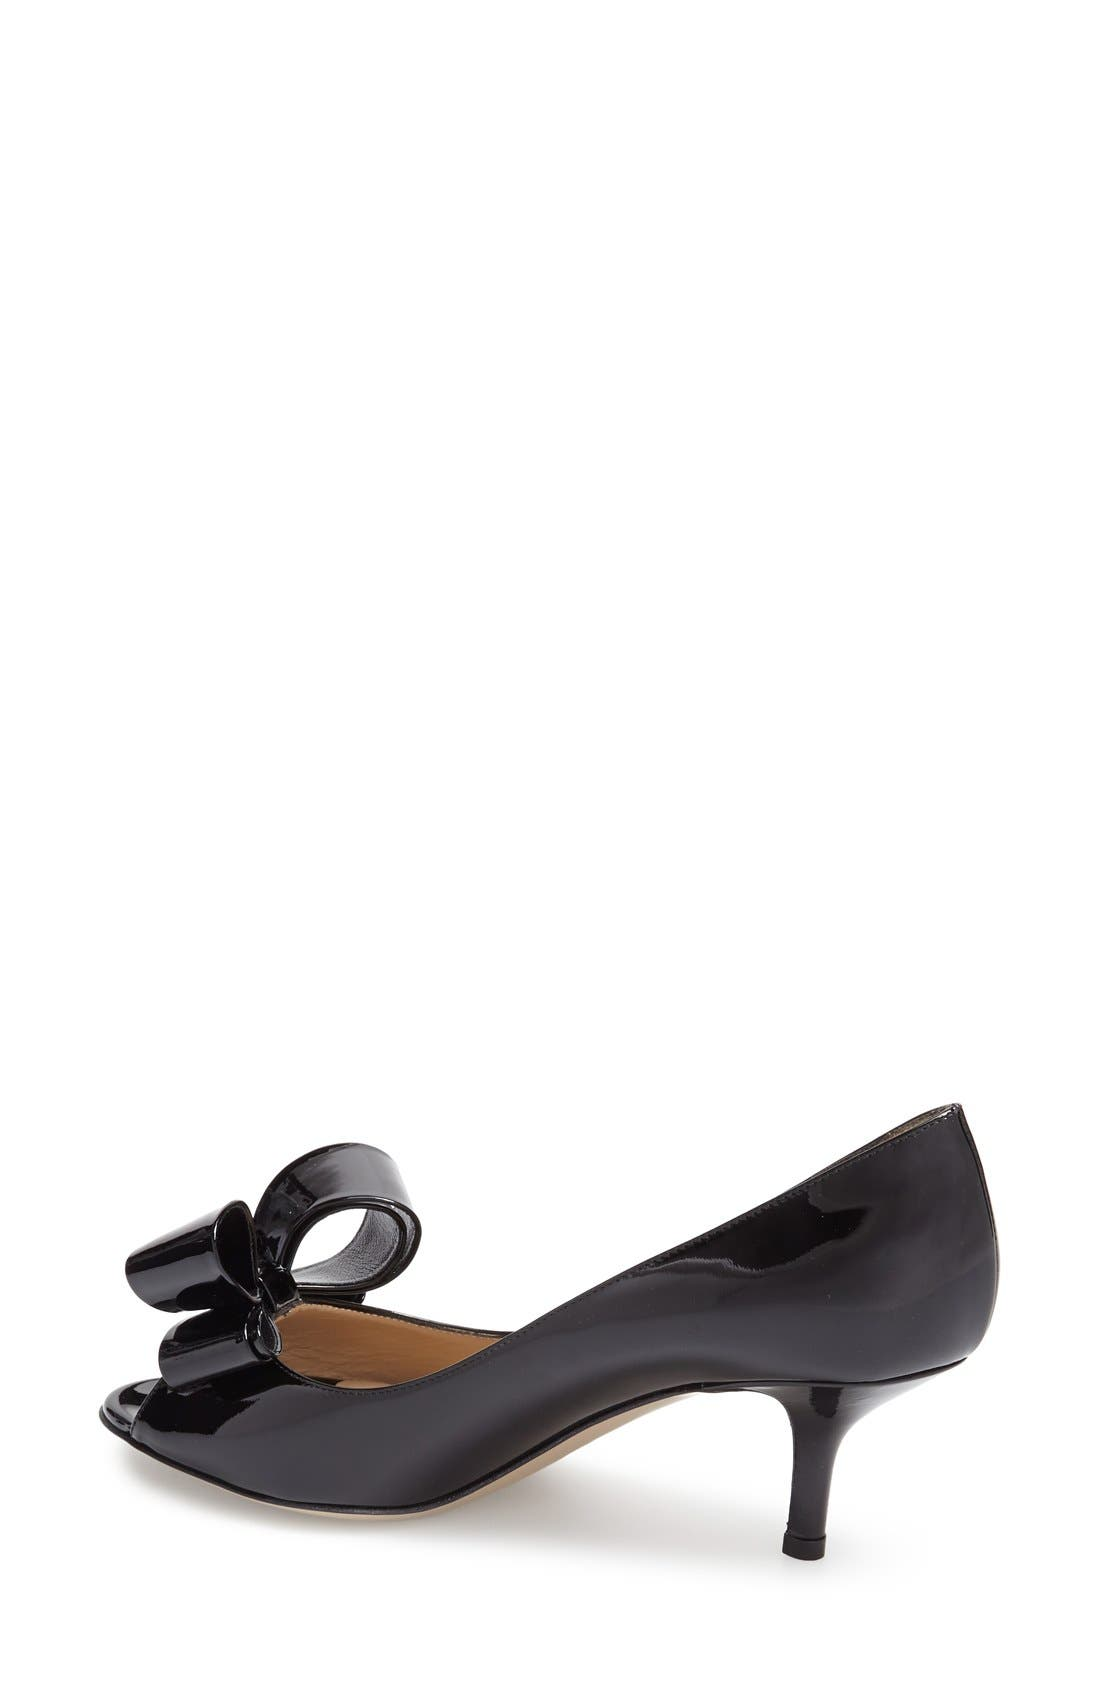 Alternate Image 2  - VALENTINO GARAVANI Couture Bow Pump (Women)